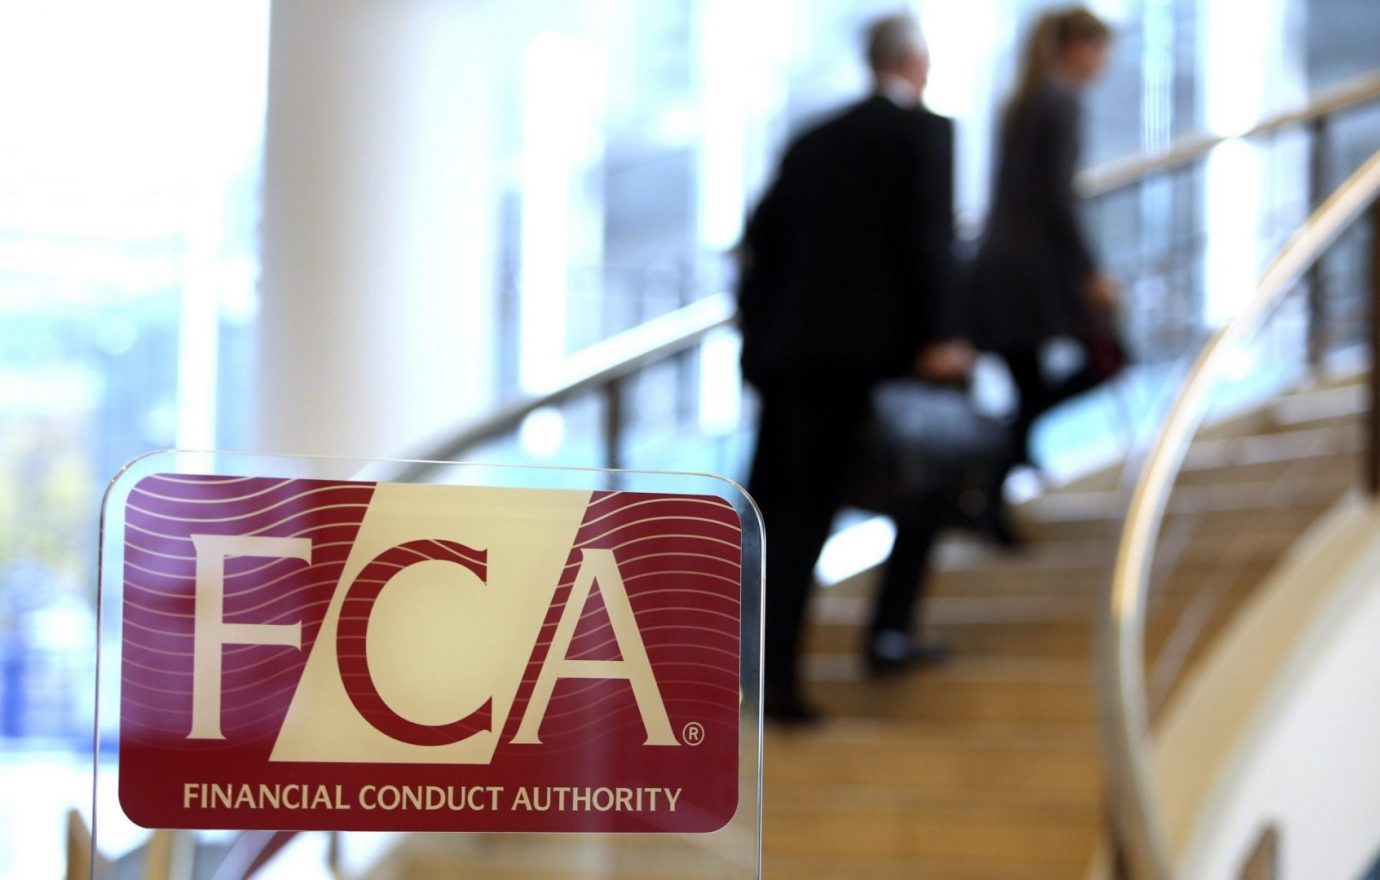 FCA Cyber-attacks Rise over 80% Against Financial Services Last Year, Says FCA